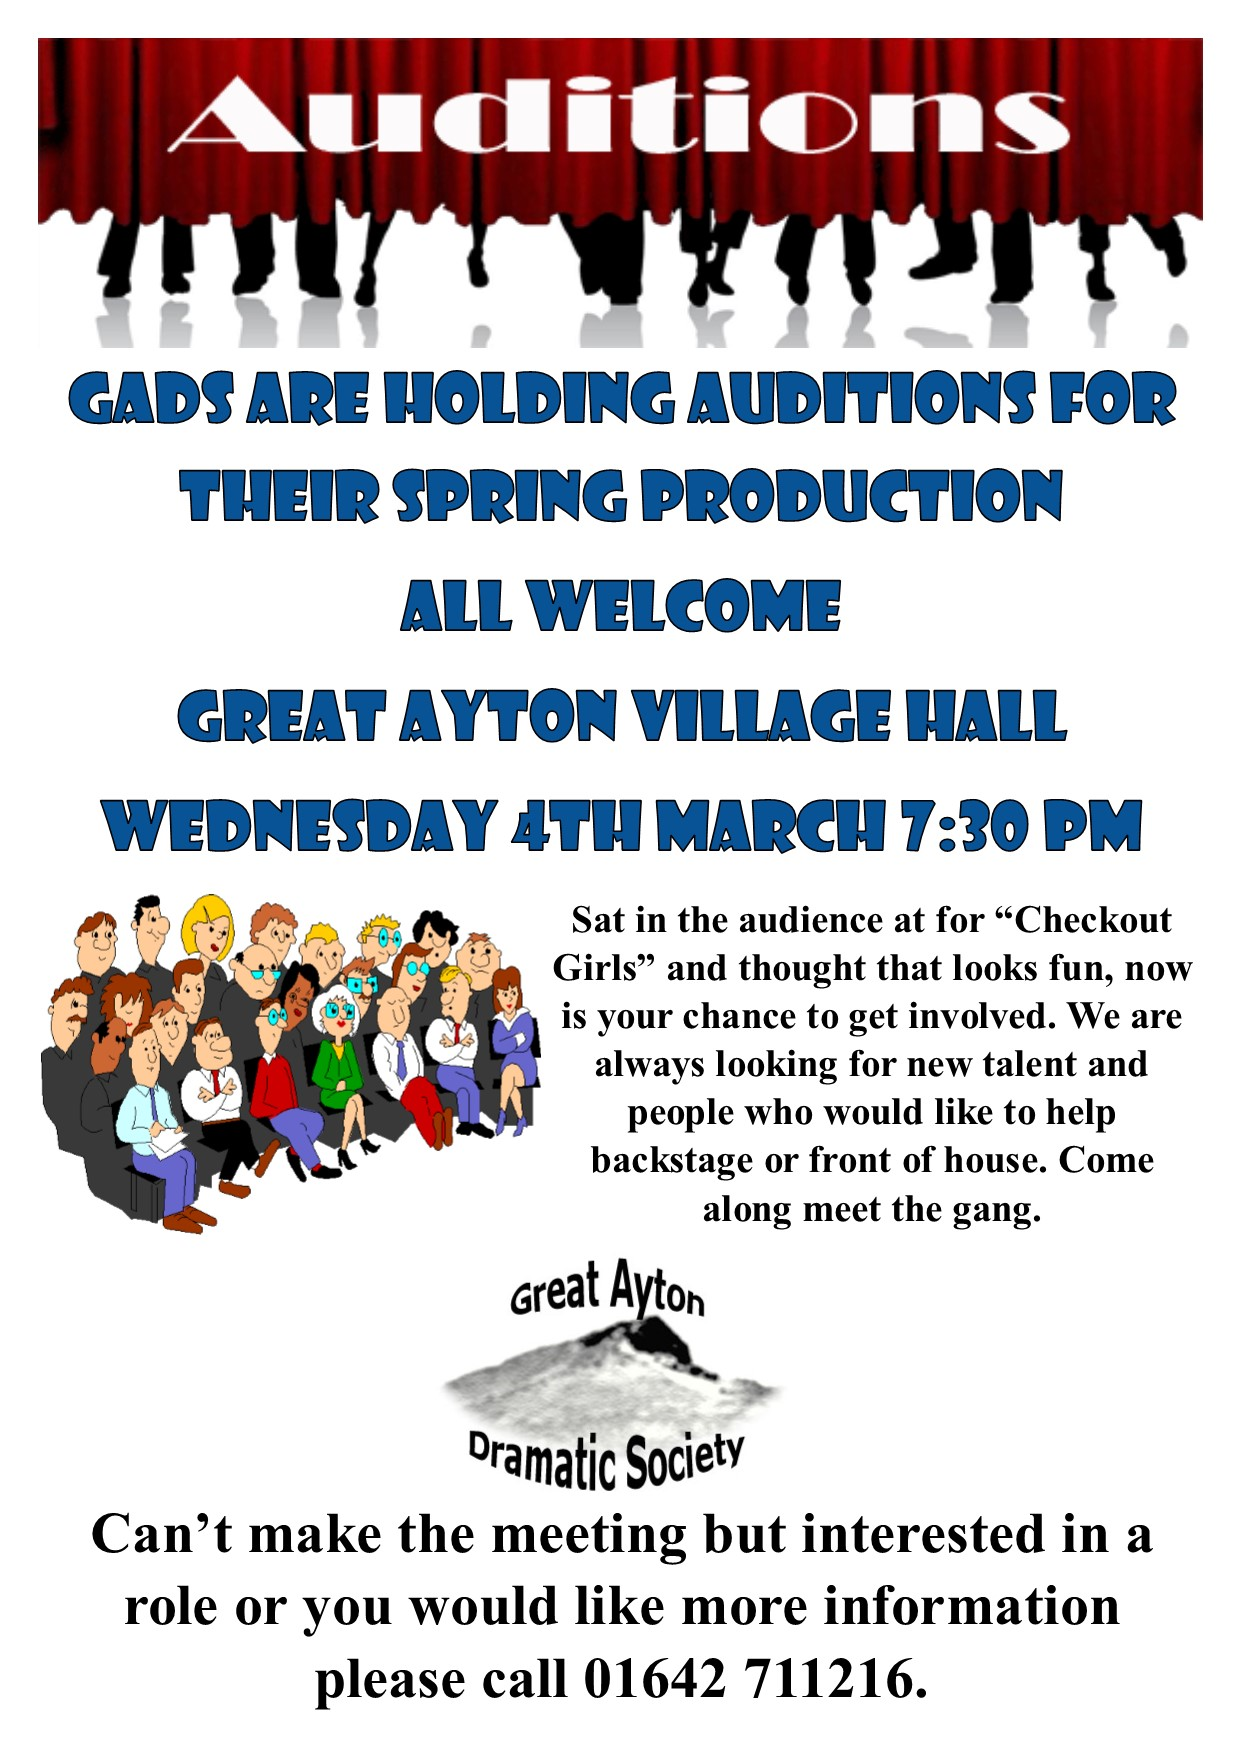 Great Ayton Dramatic Society auditions poster